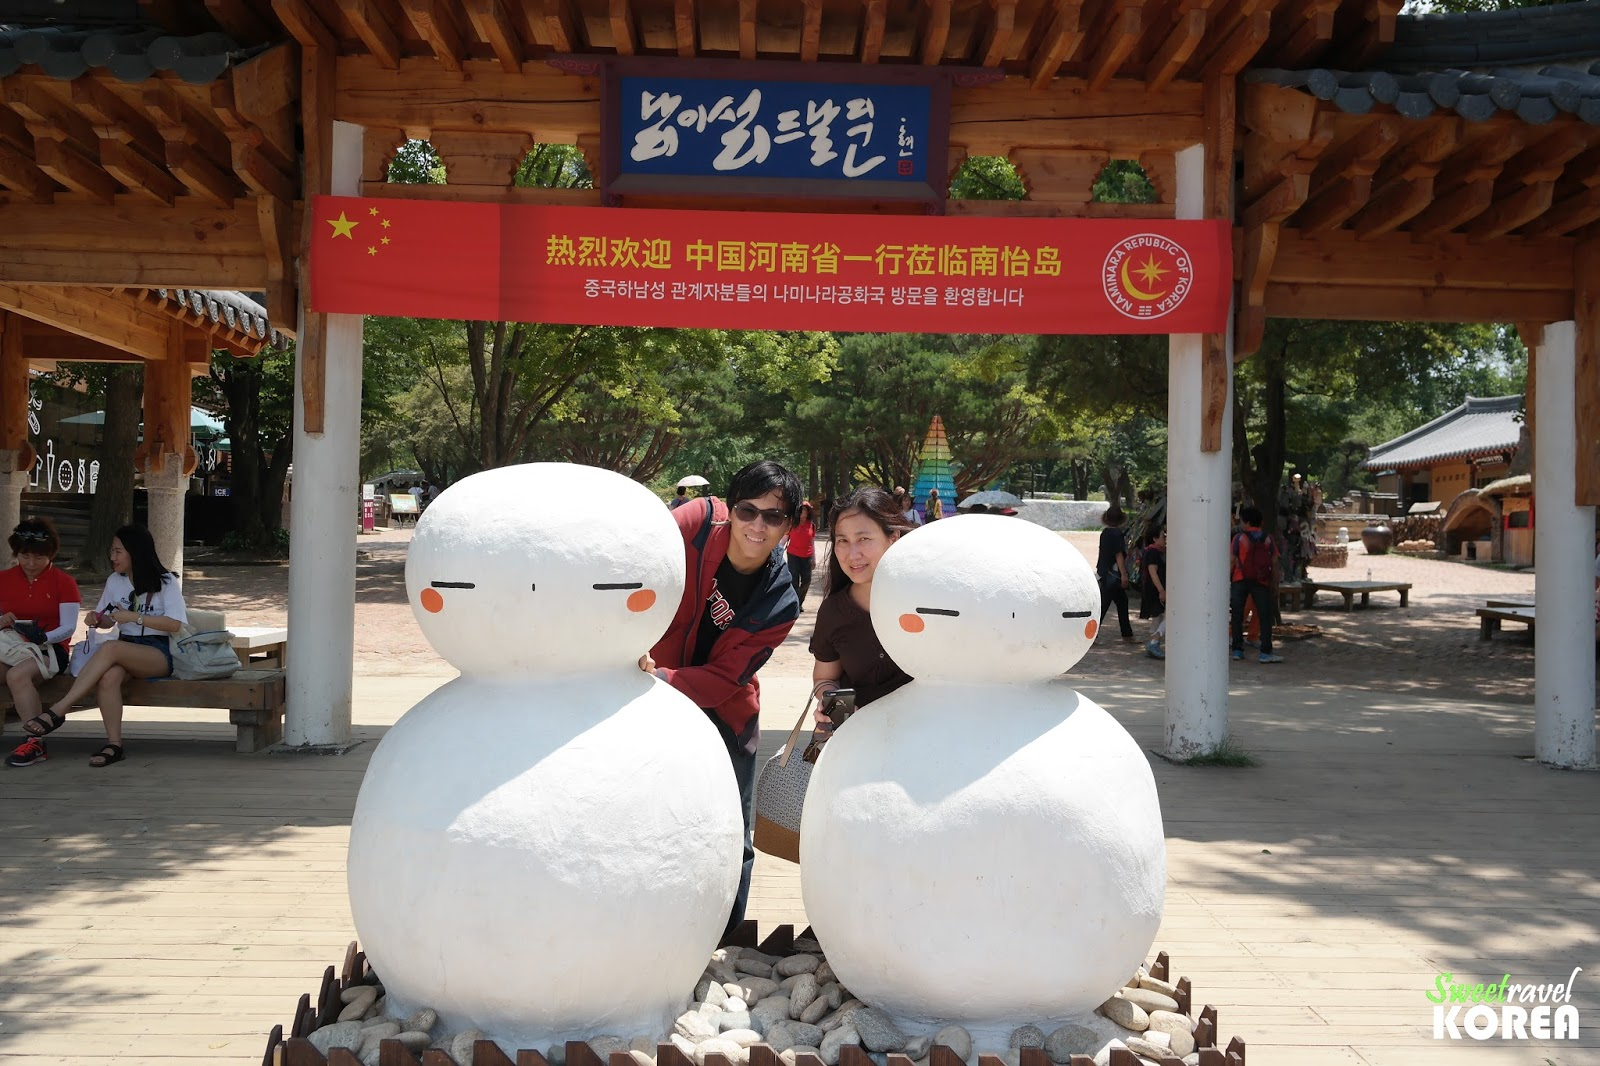 attraction review reviews traveling private tour seoul